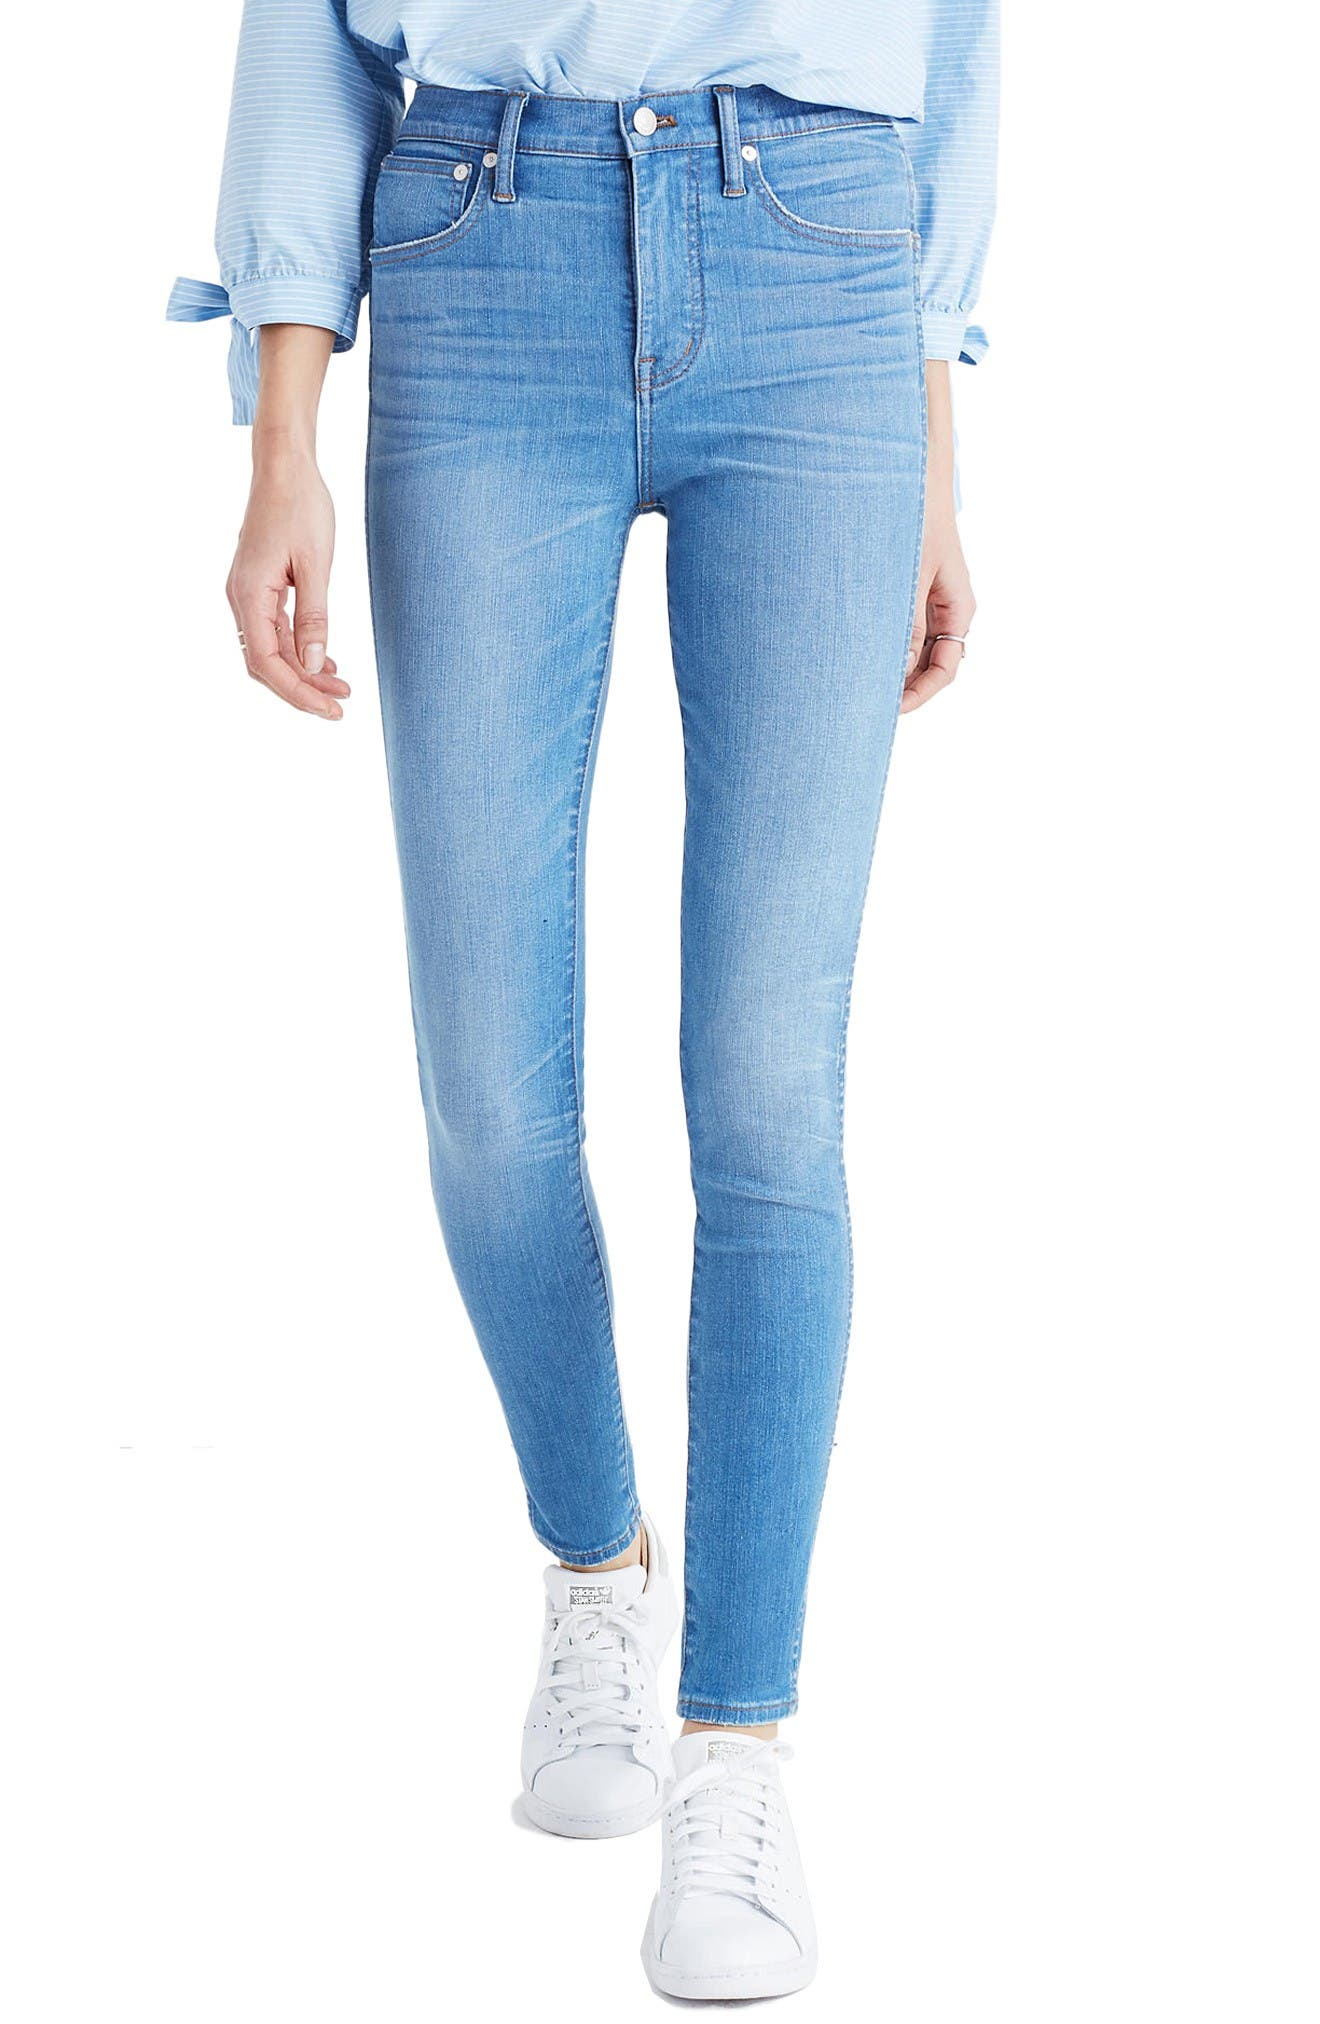 Alternate Image 1 Selected - Madewell High Rise Skinny Jeans (Hank Wash)